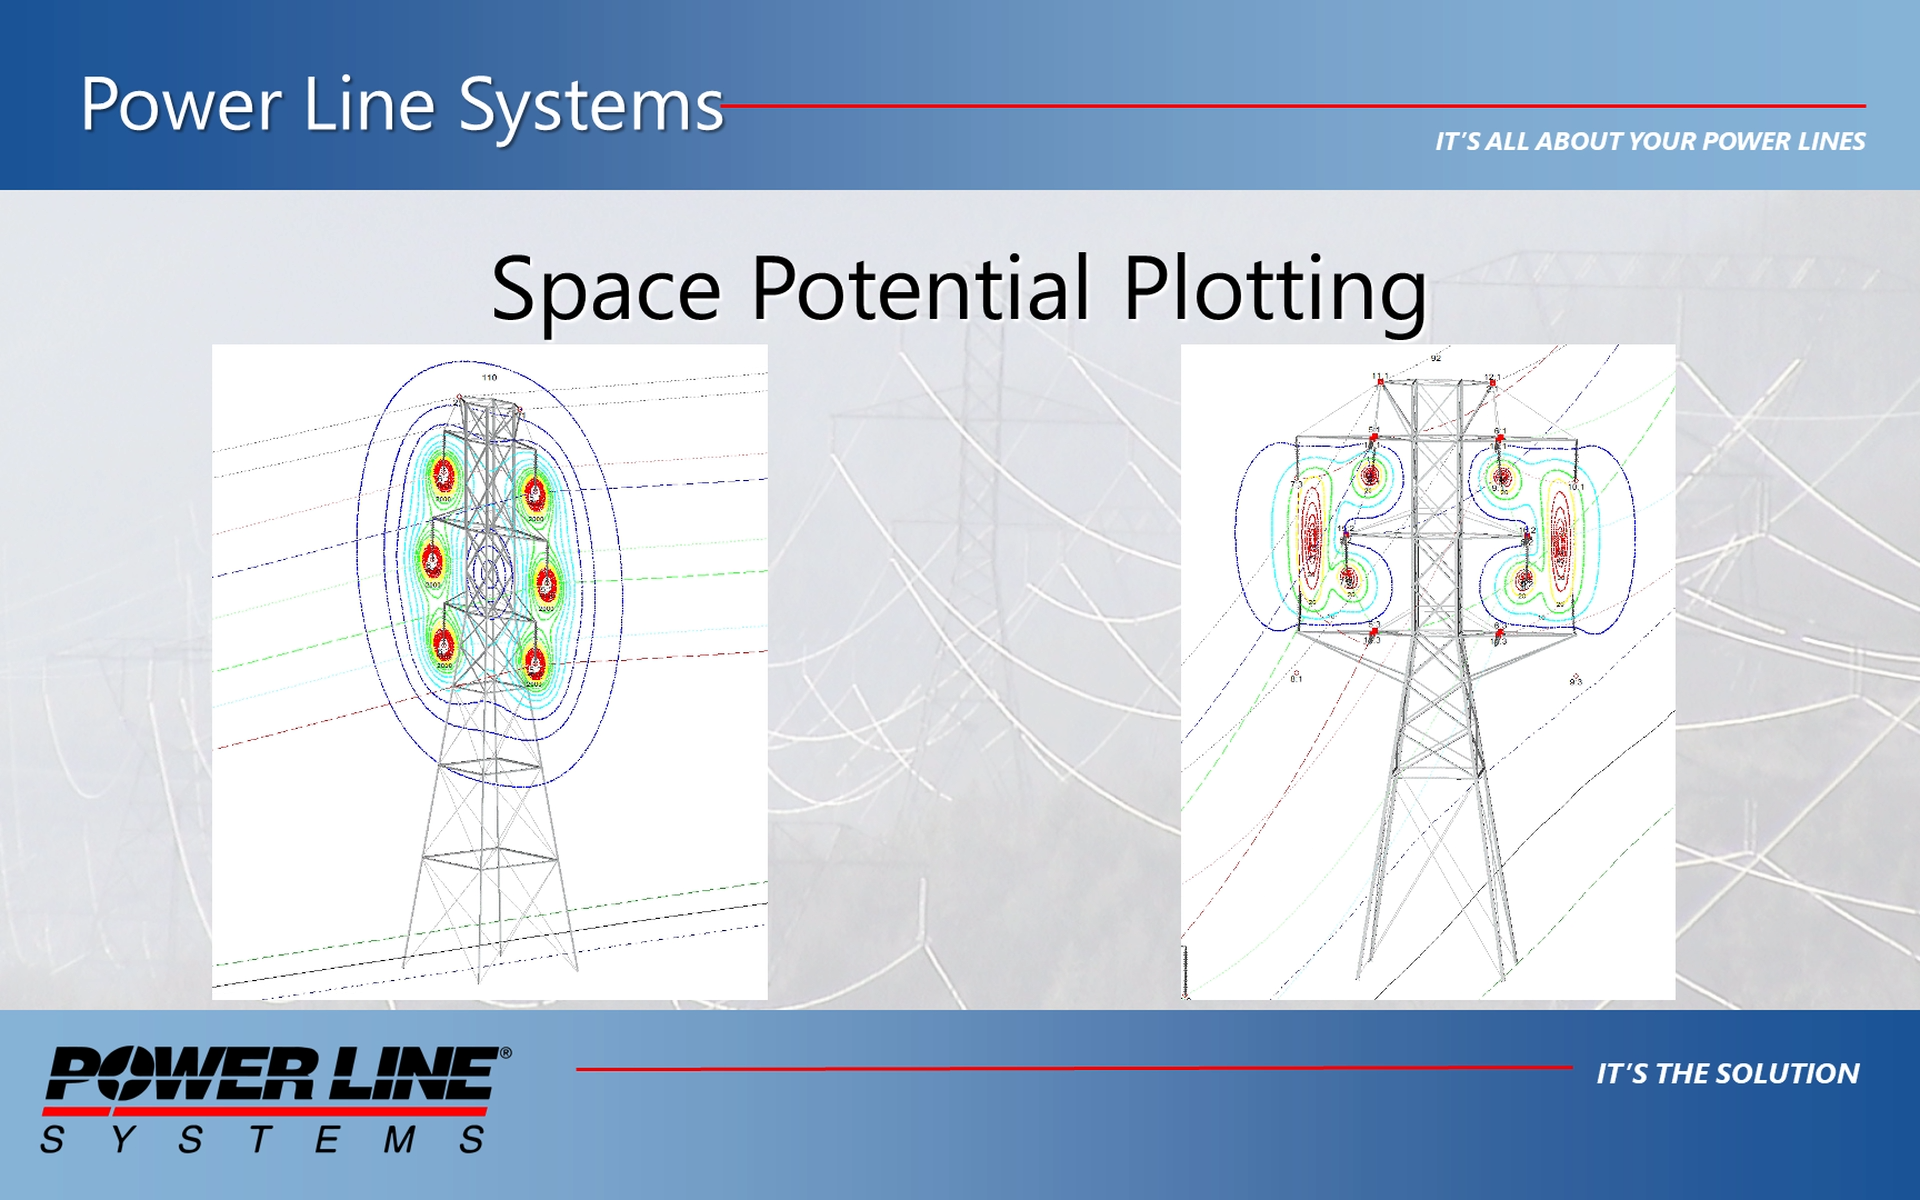 Power Line Systems